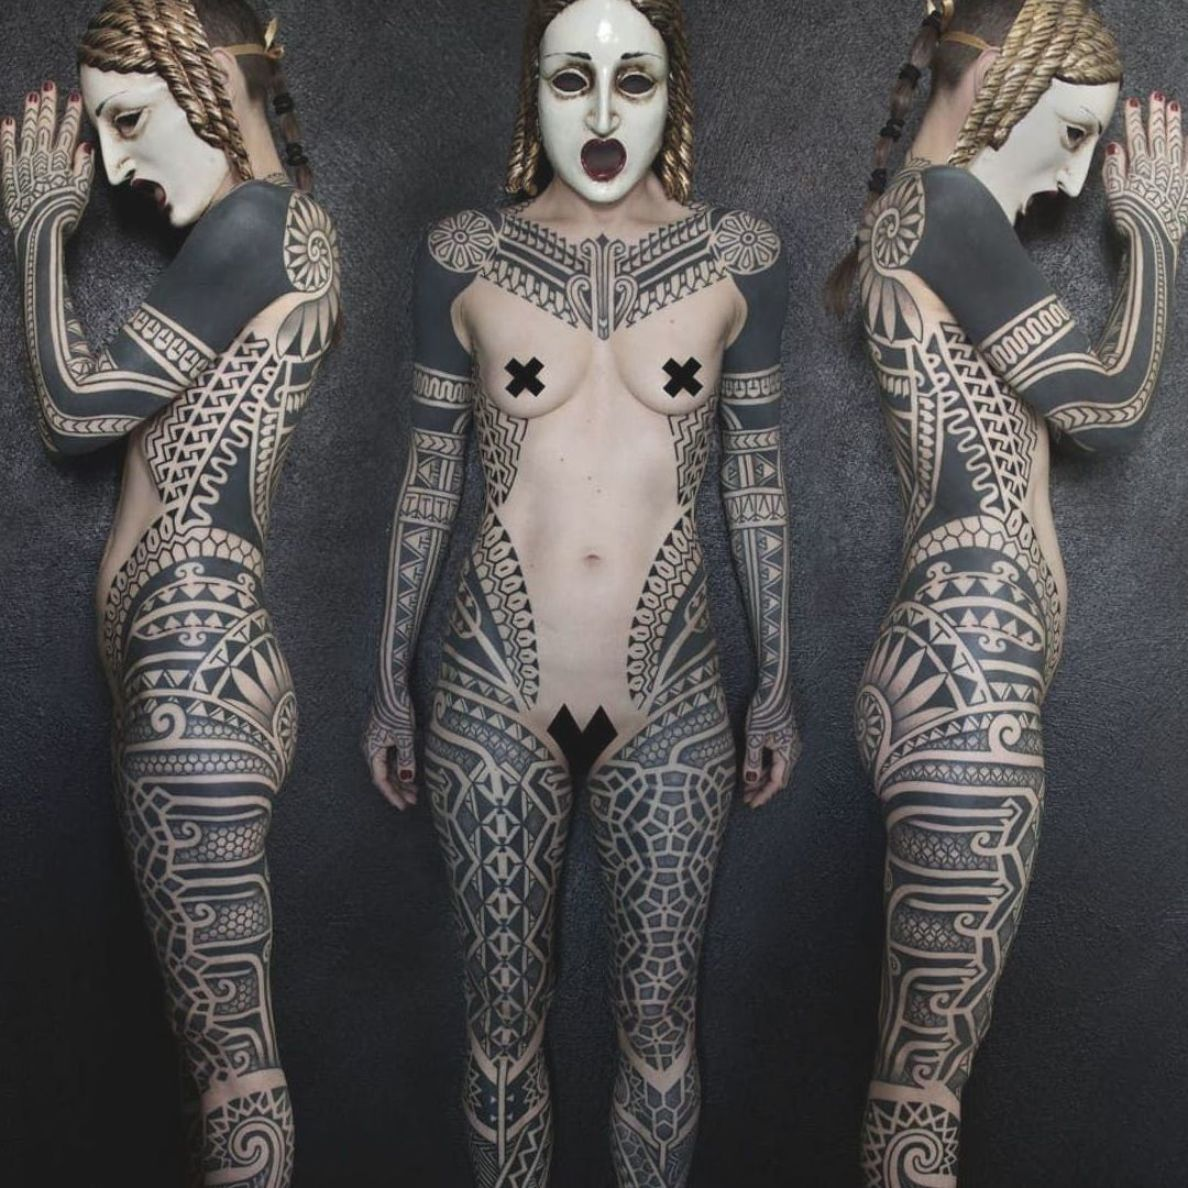 Blackwork bodysuit by Samuel Christensen